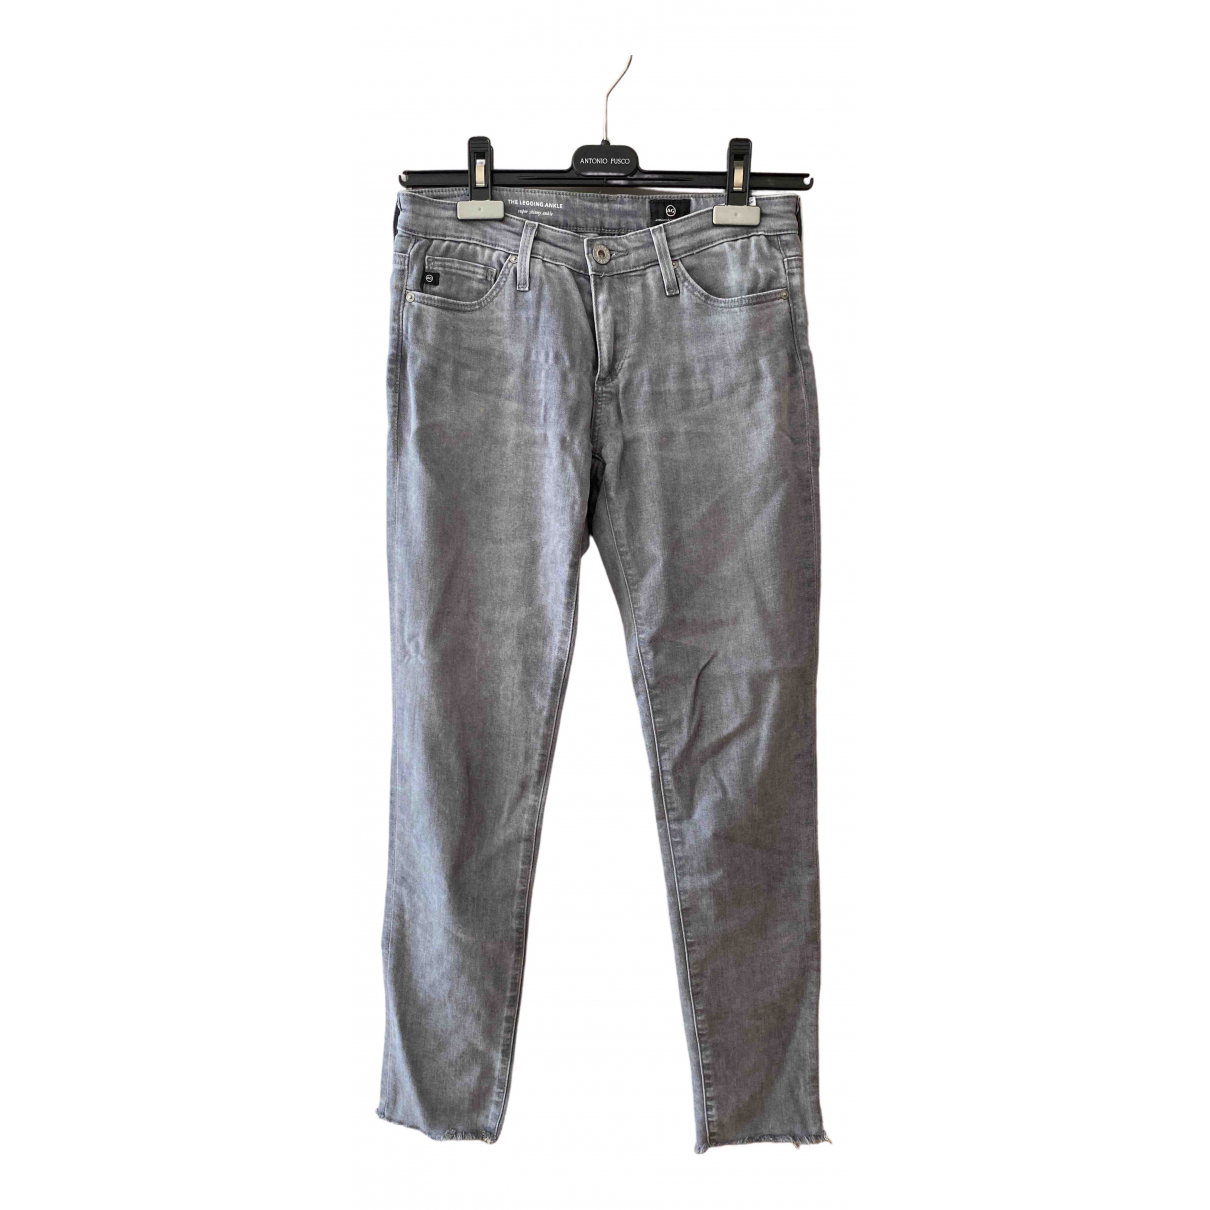 Adriano Goldschmied \N Grey Cotton - elasthane Jeans for Women 24 US